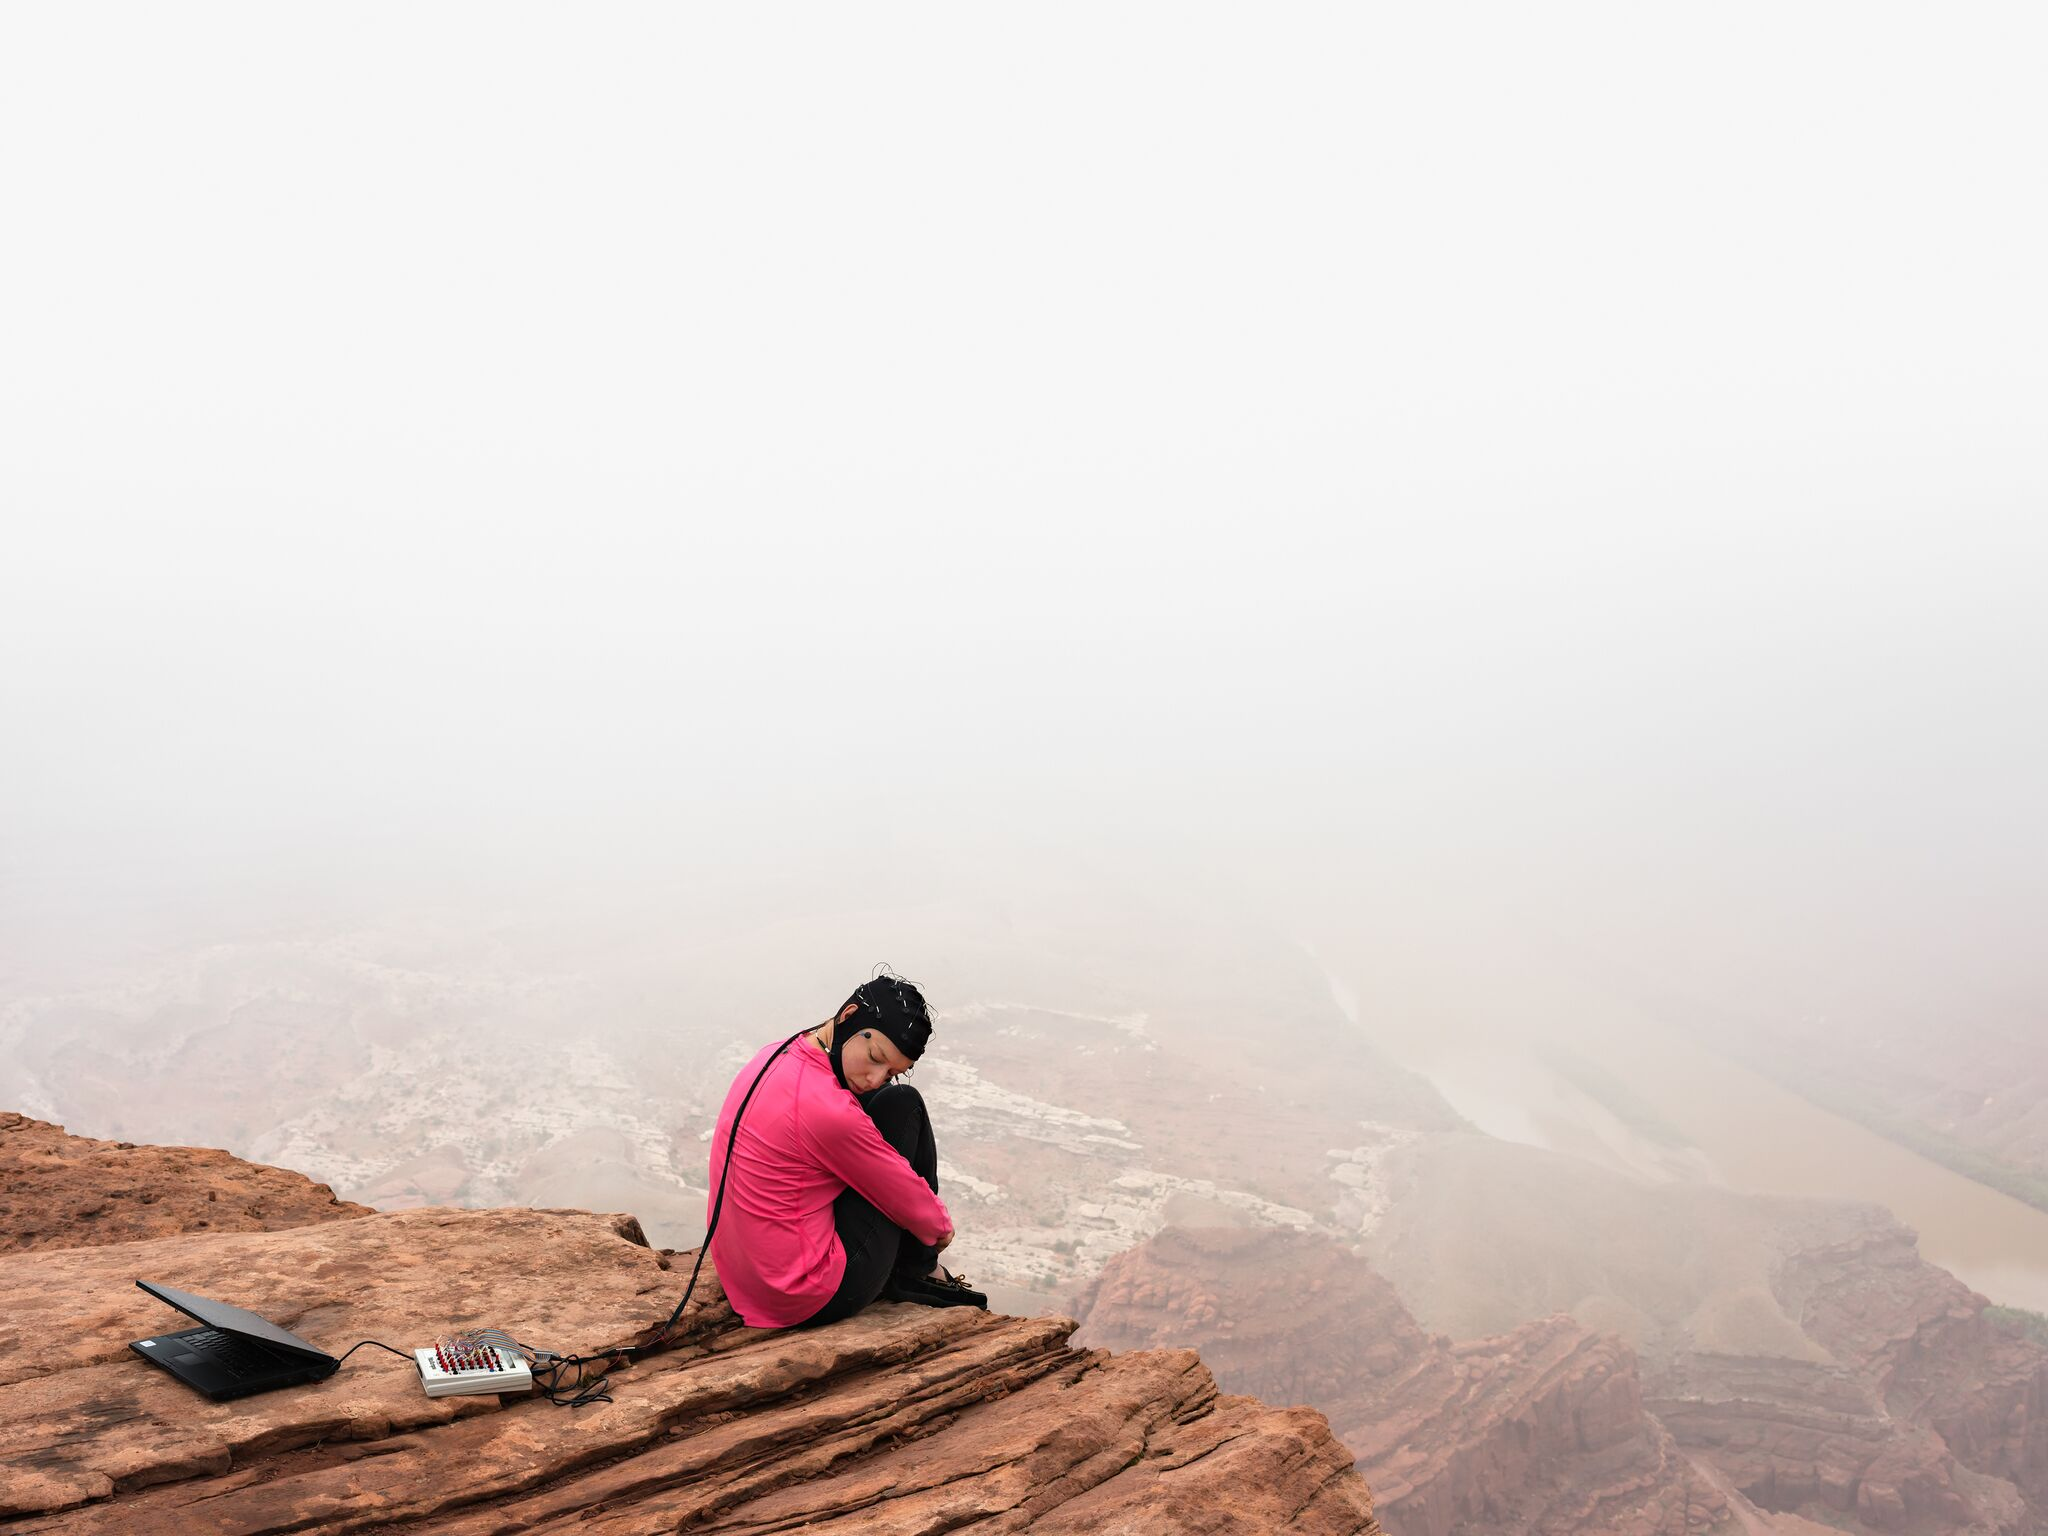 Human Nature Book by Lucas Foglia (7 pics)